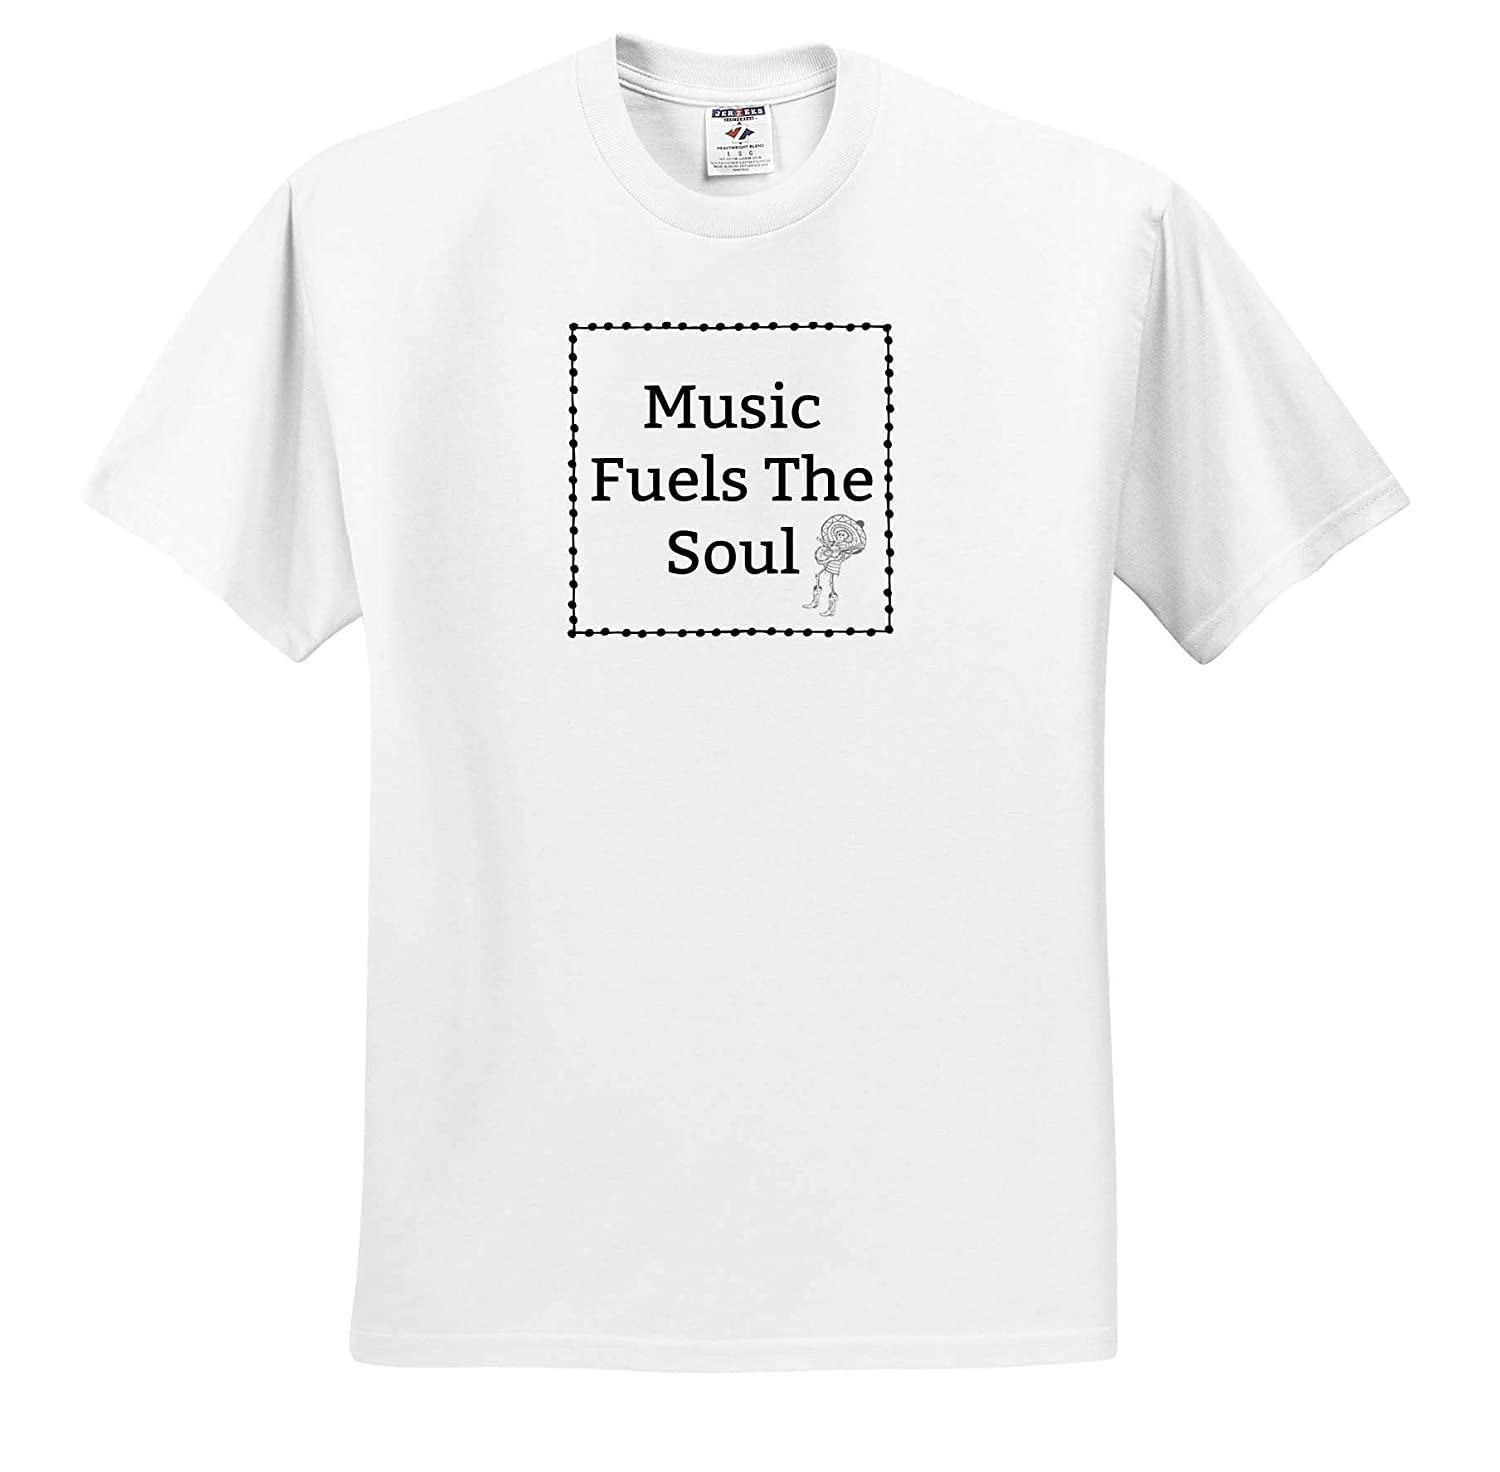 Adult T-Shirt XL Image of Music Fuels The Soul ts/_316687 3dRose Carrie Merchant Image